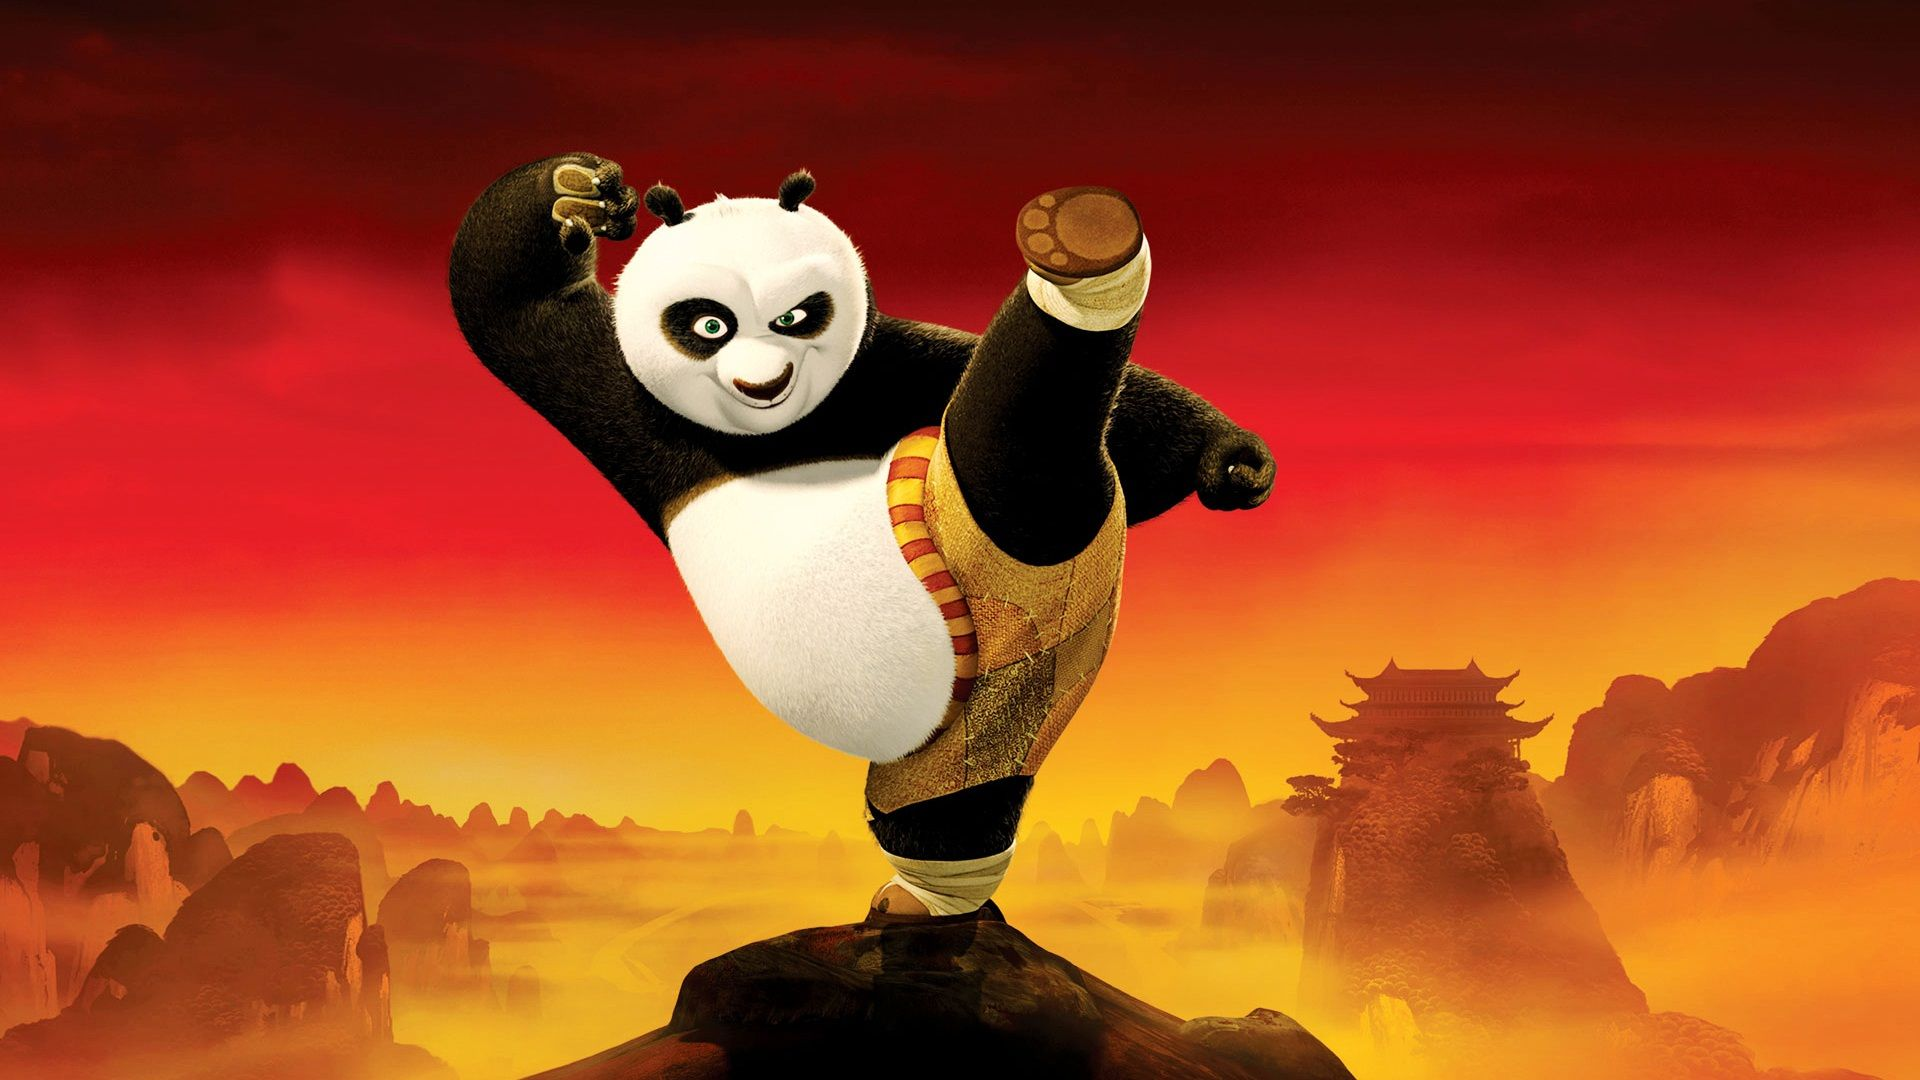 Kung fu panda iphone wallpaper - Kung Fu Panda 2 2011 Hd Wallpaper Http Imashon